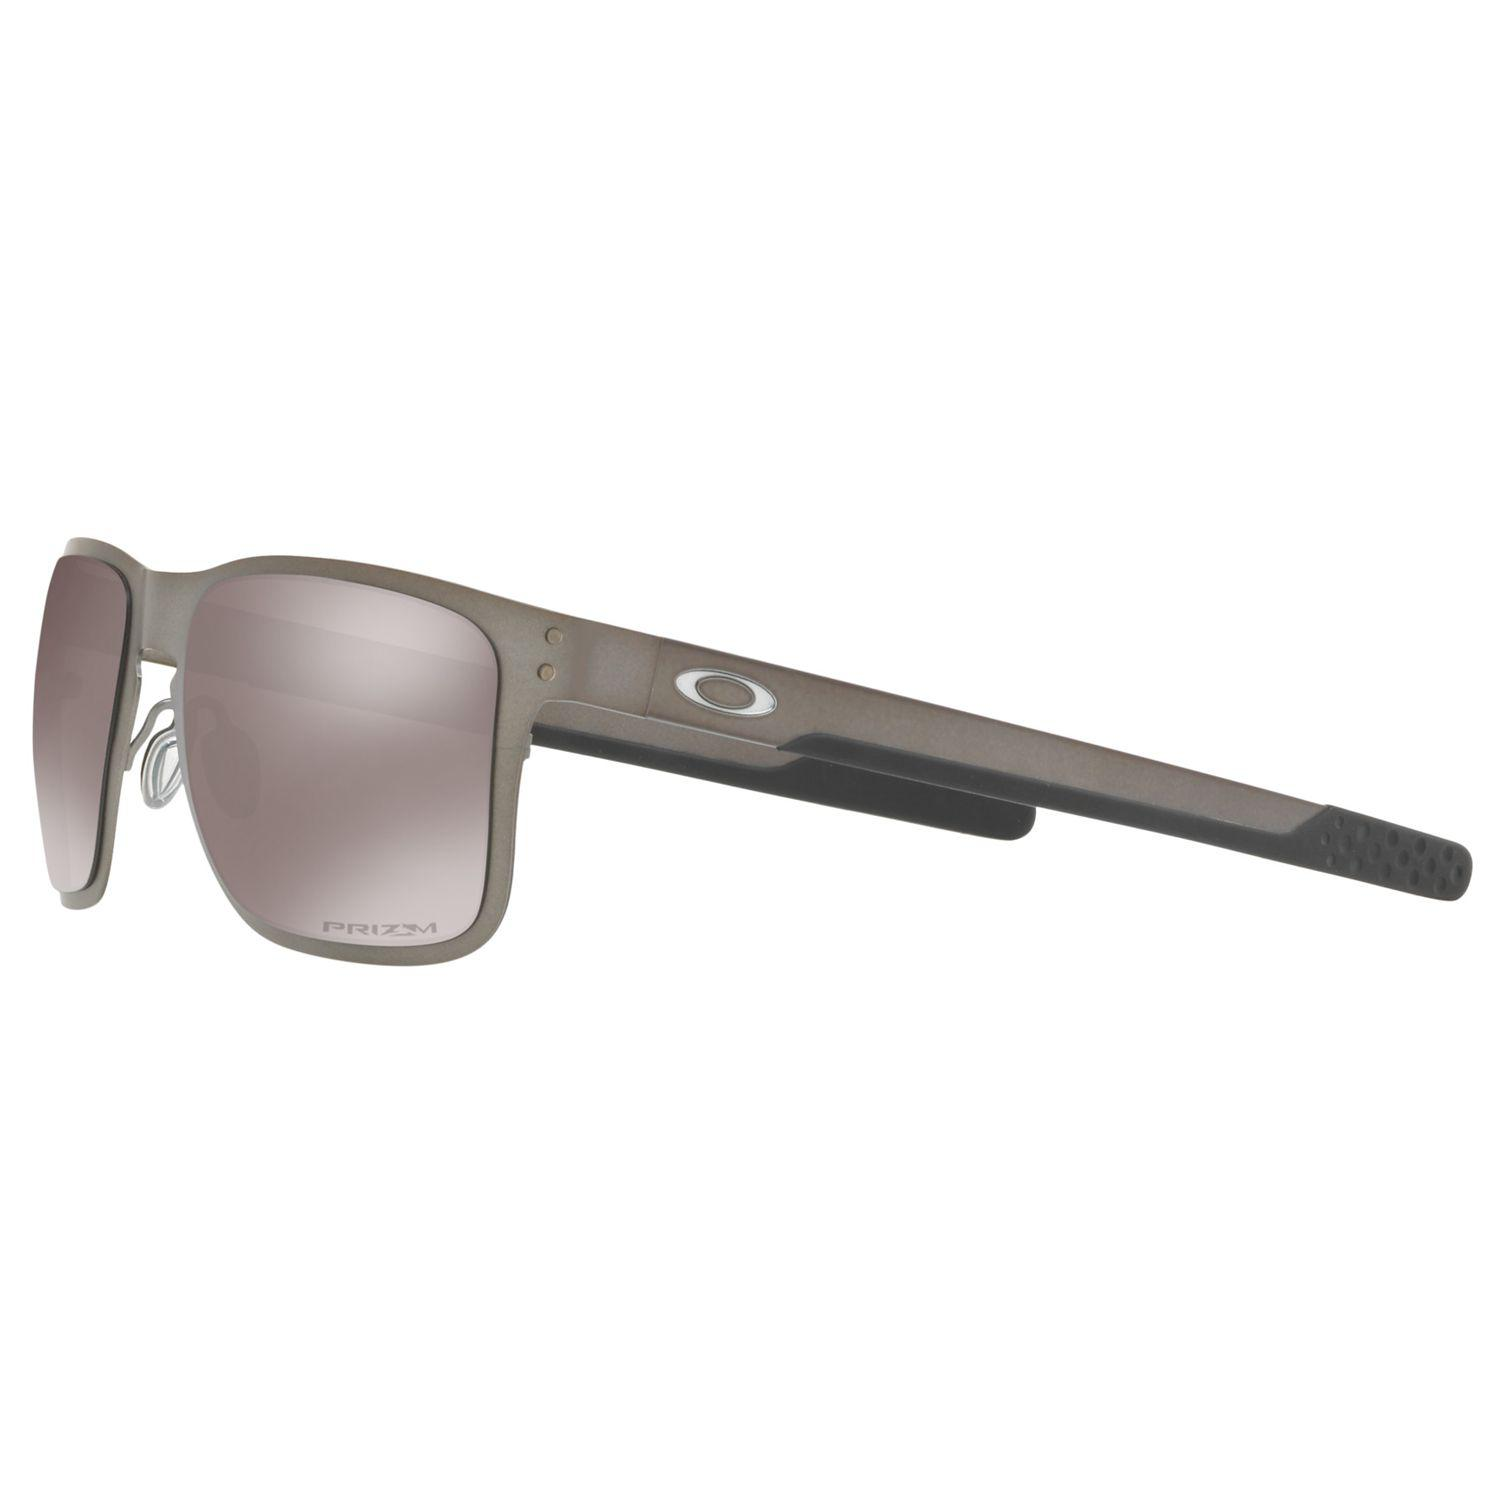 0832f0ae30 Oakley - Gray Oo4123 Men s Holbrook Prizm Polarised Metal Square Sunglasses  for Men - Lyst. View fullscreen